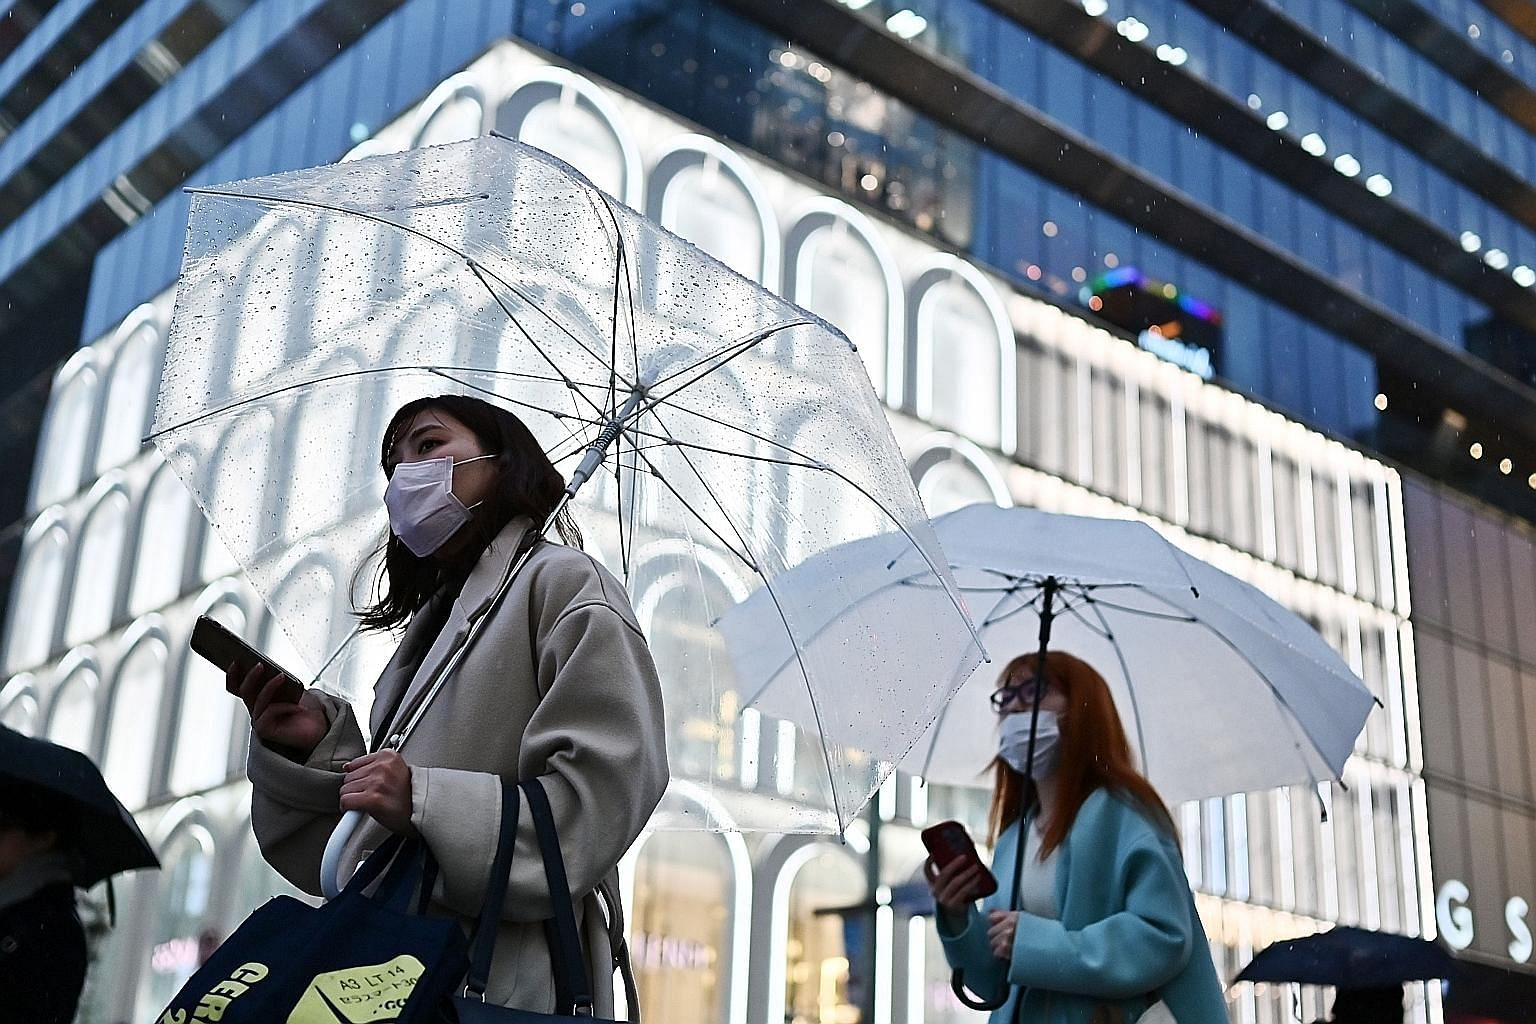 """Shoppers with face masks in Tokyo's Ginza area yesterday. Japan's draft """"state of emergency"""" Bill, which is set to coast through Parliament, will give the prefectural authorities the right to impose curfews, close schools, axe events and take over pr"""